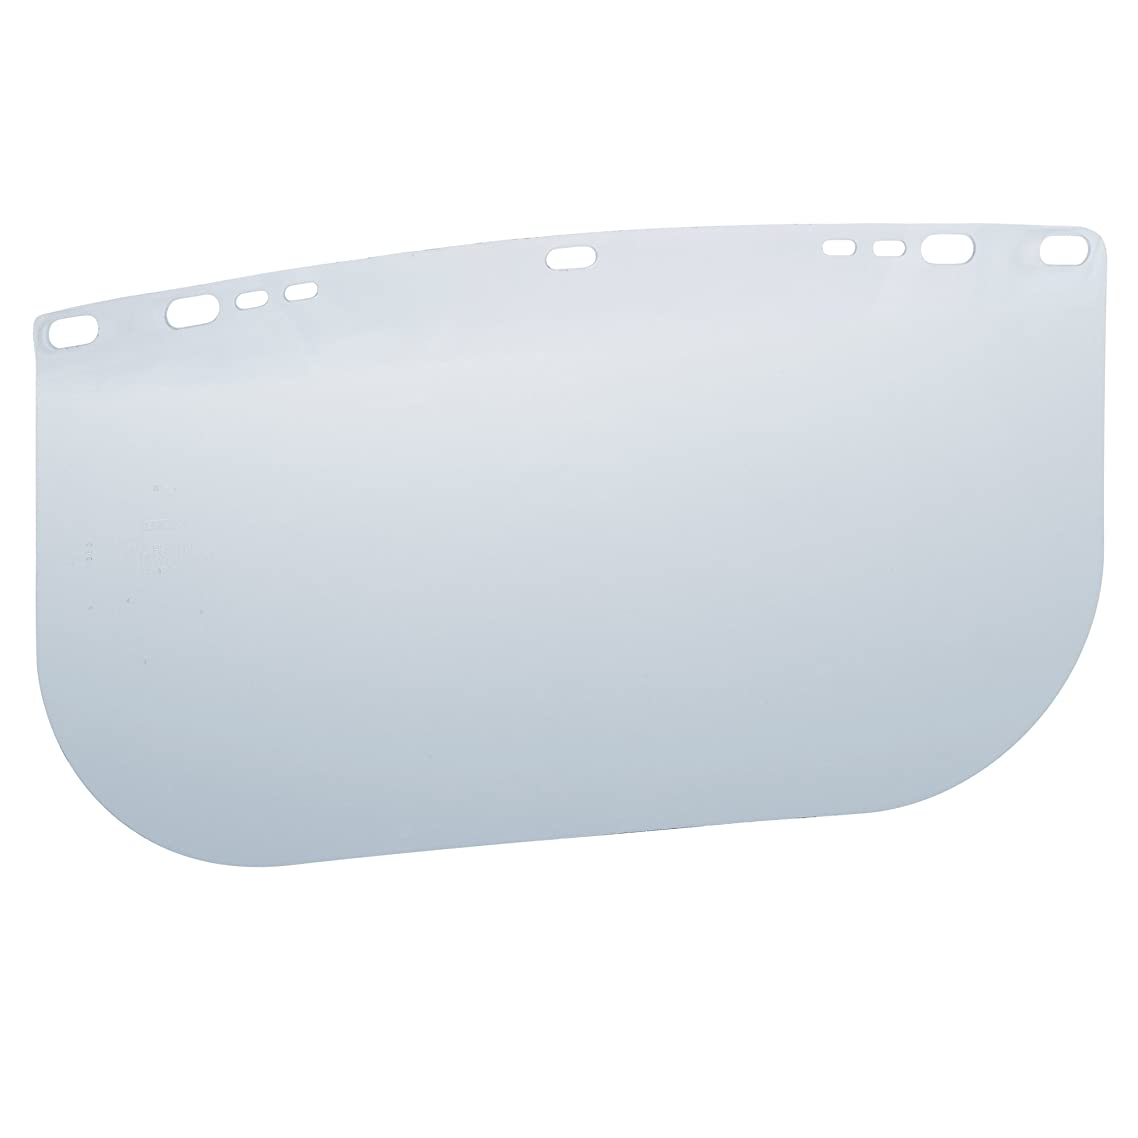 """Jackson Safety F20 High Impact Face Shield (29099), Polycarbonate, 8"""" x 15.5"""" x 0.04"""", Clear, Face Protection, Unbound, 36 Shields / Case"""